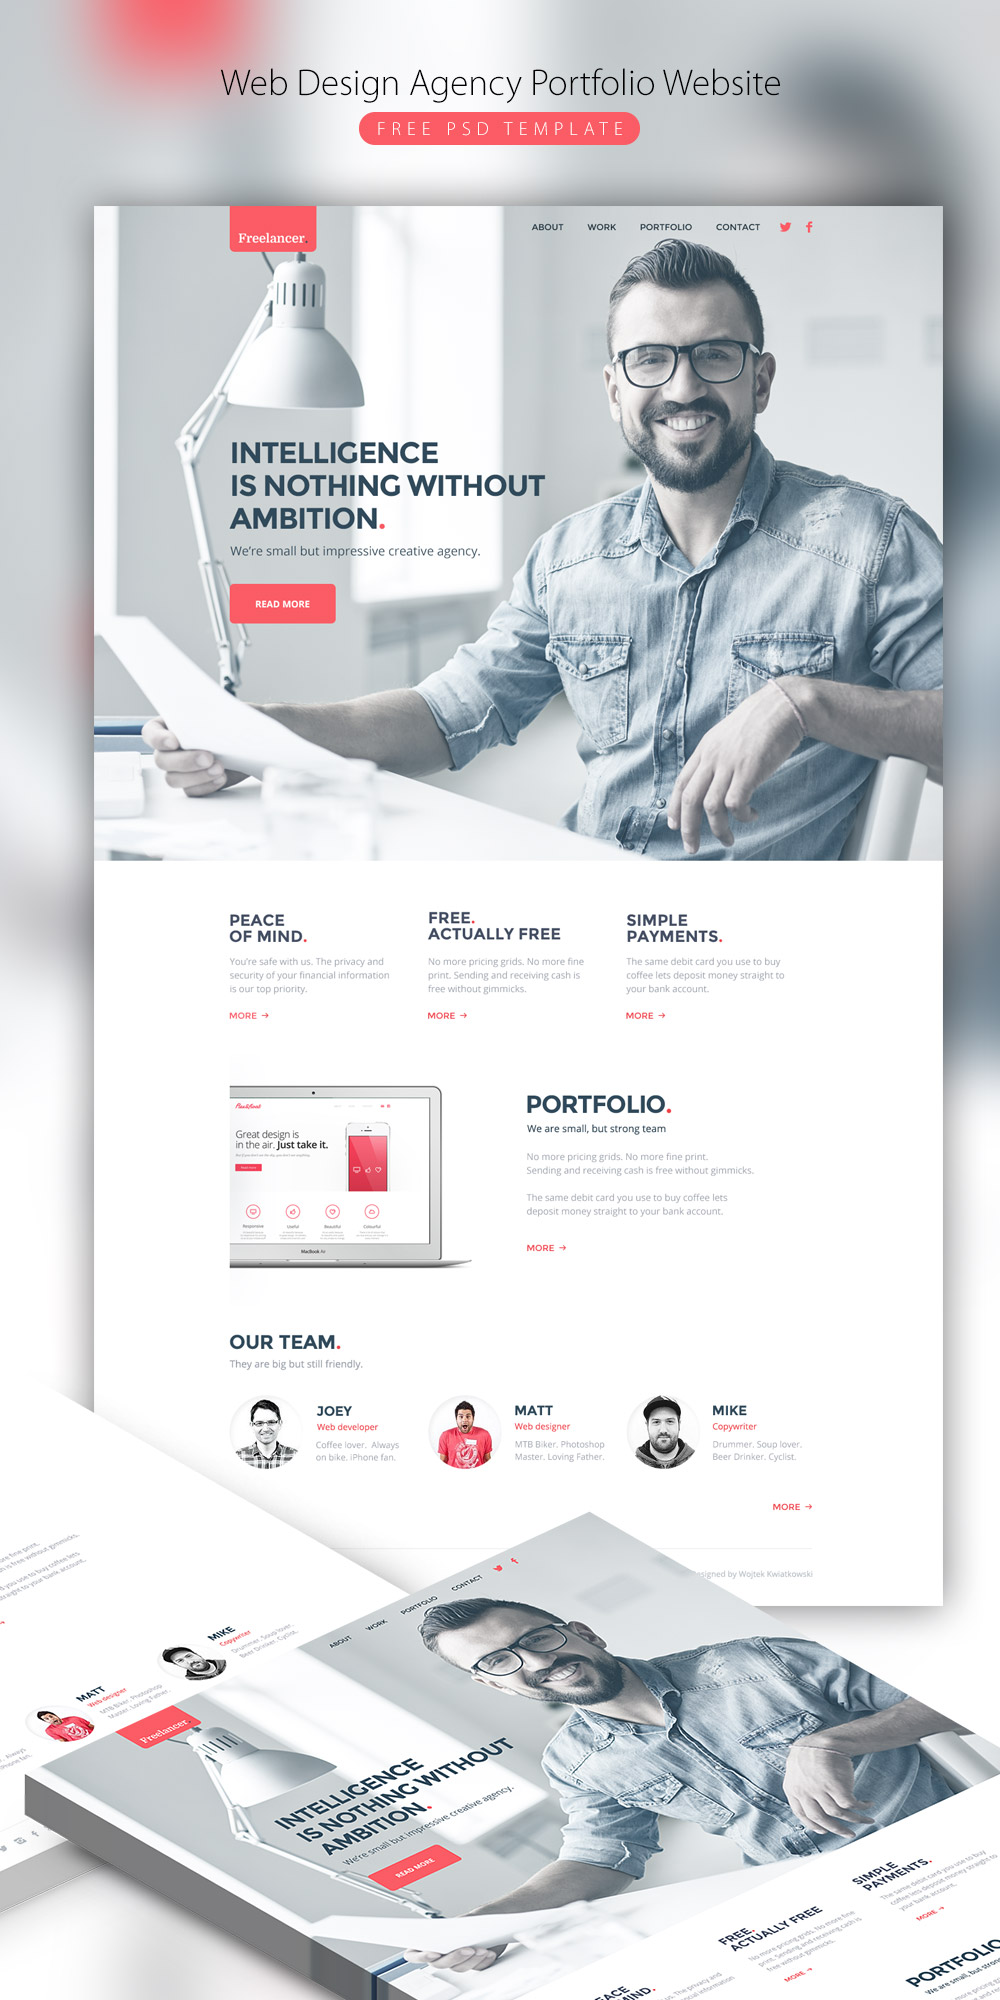 Web design agency portfolio website free psd template for Website layout design software free download